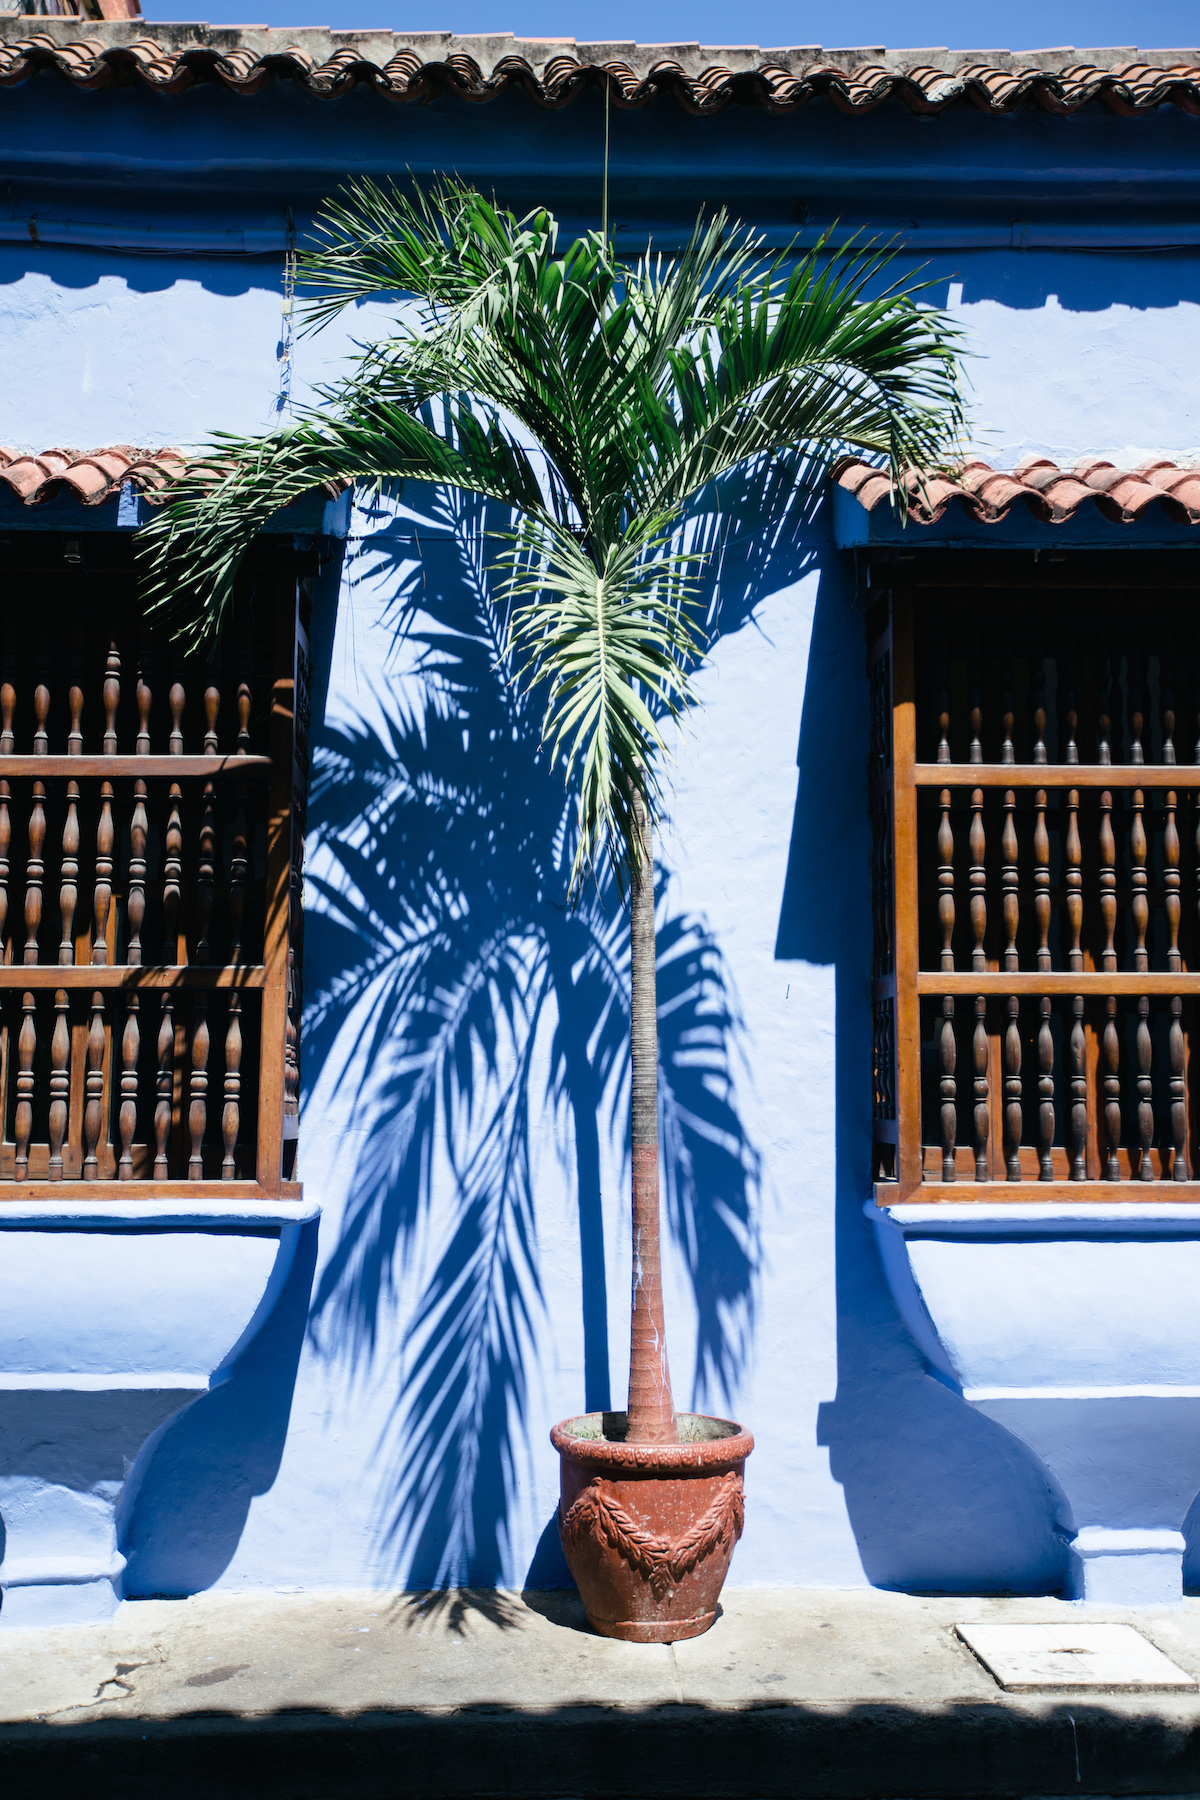 Cartagena is full of colourful Spanish colonial buildings, many with gorgeous bougainvillea dripping off balconies.